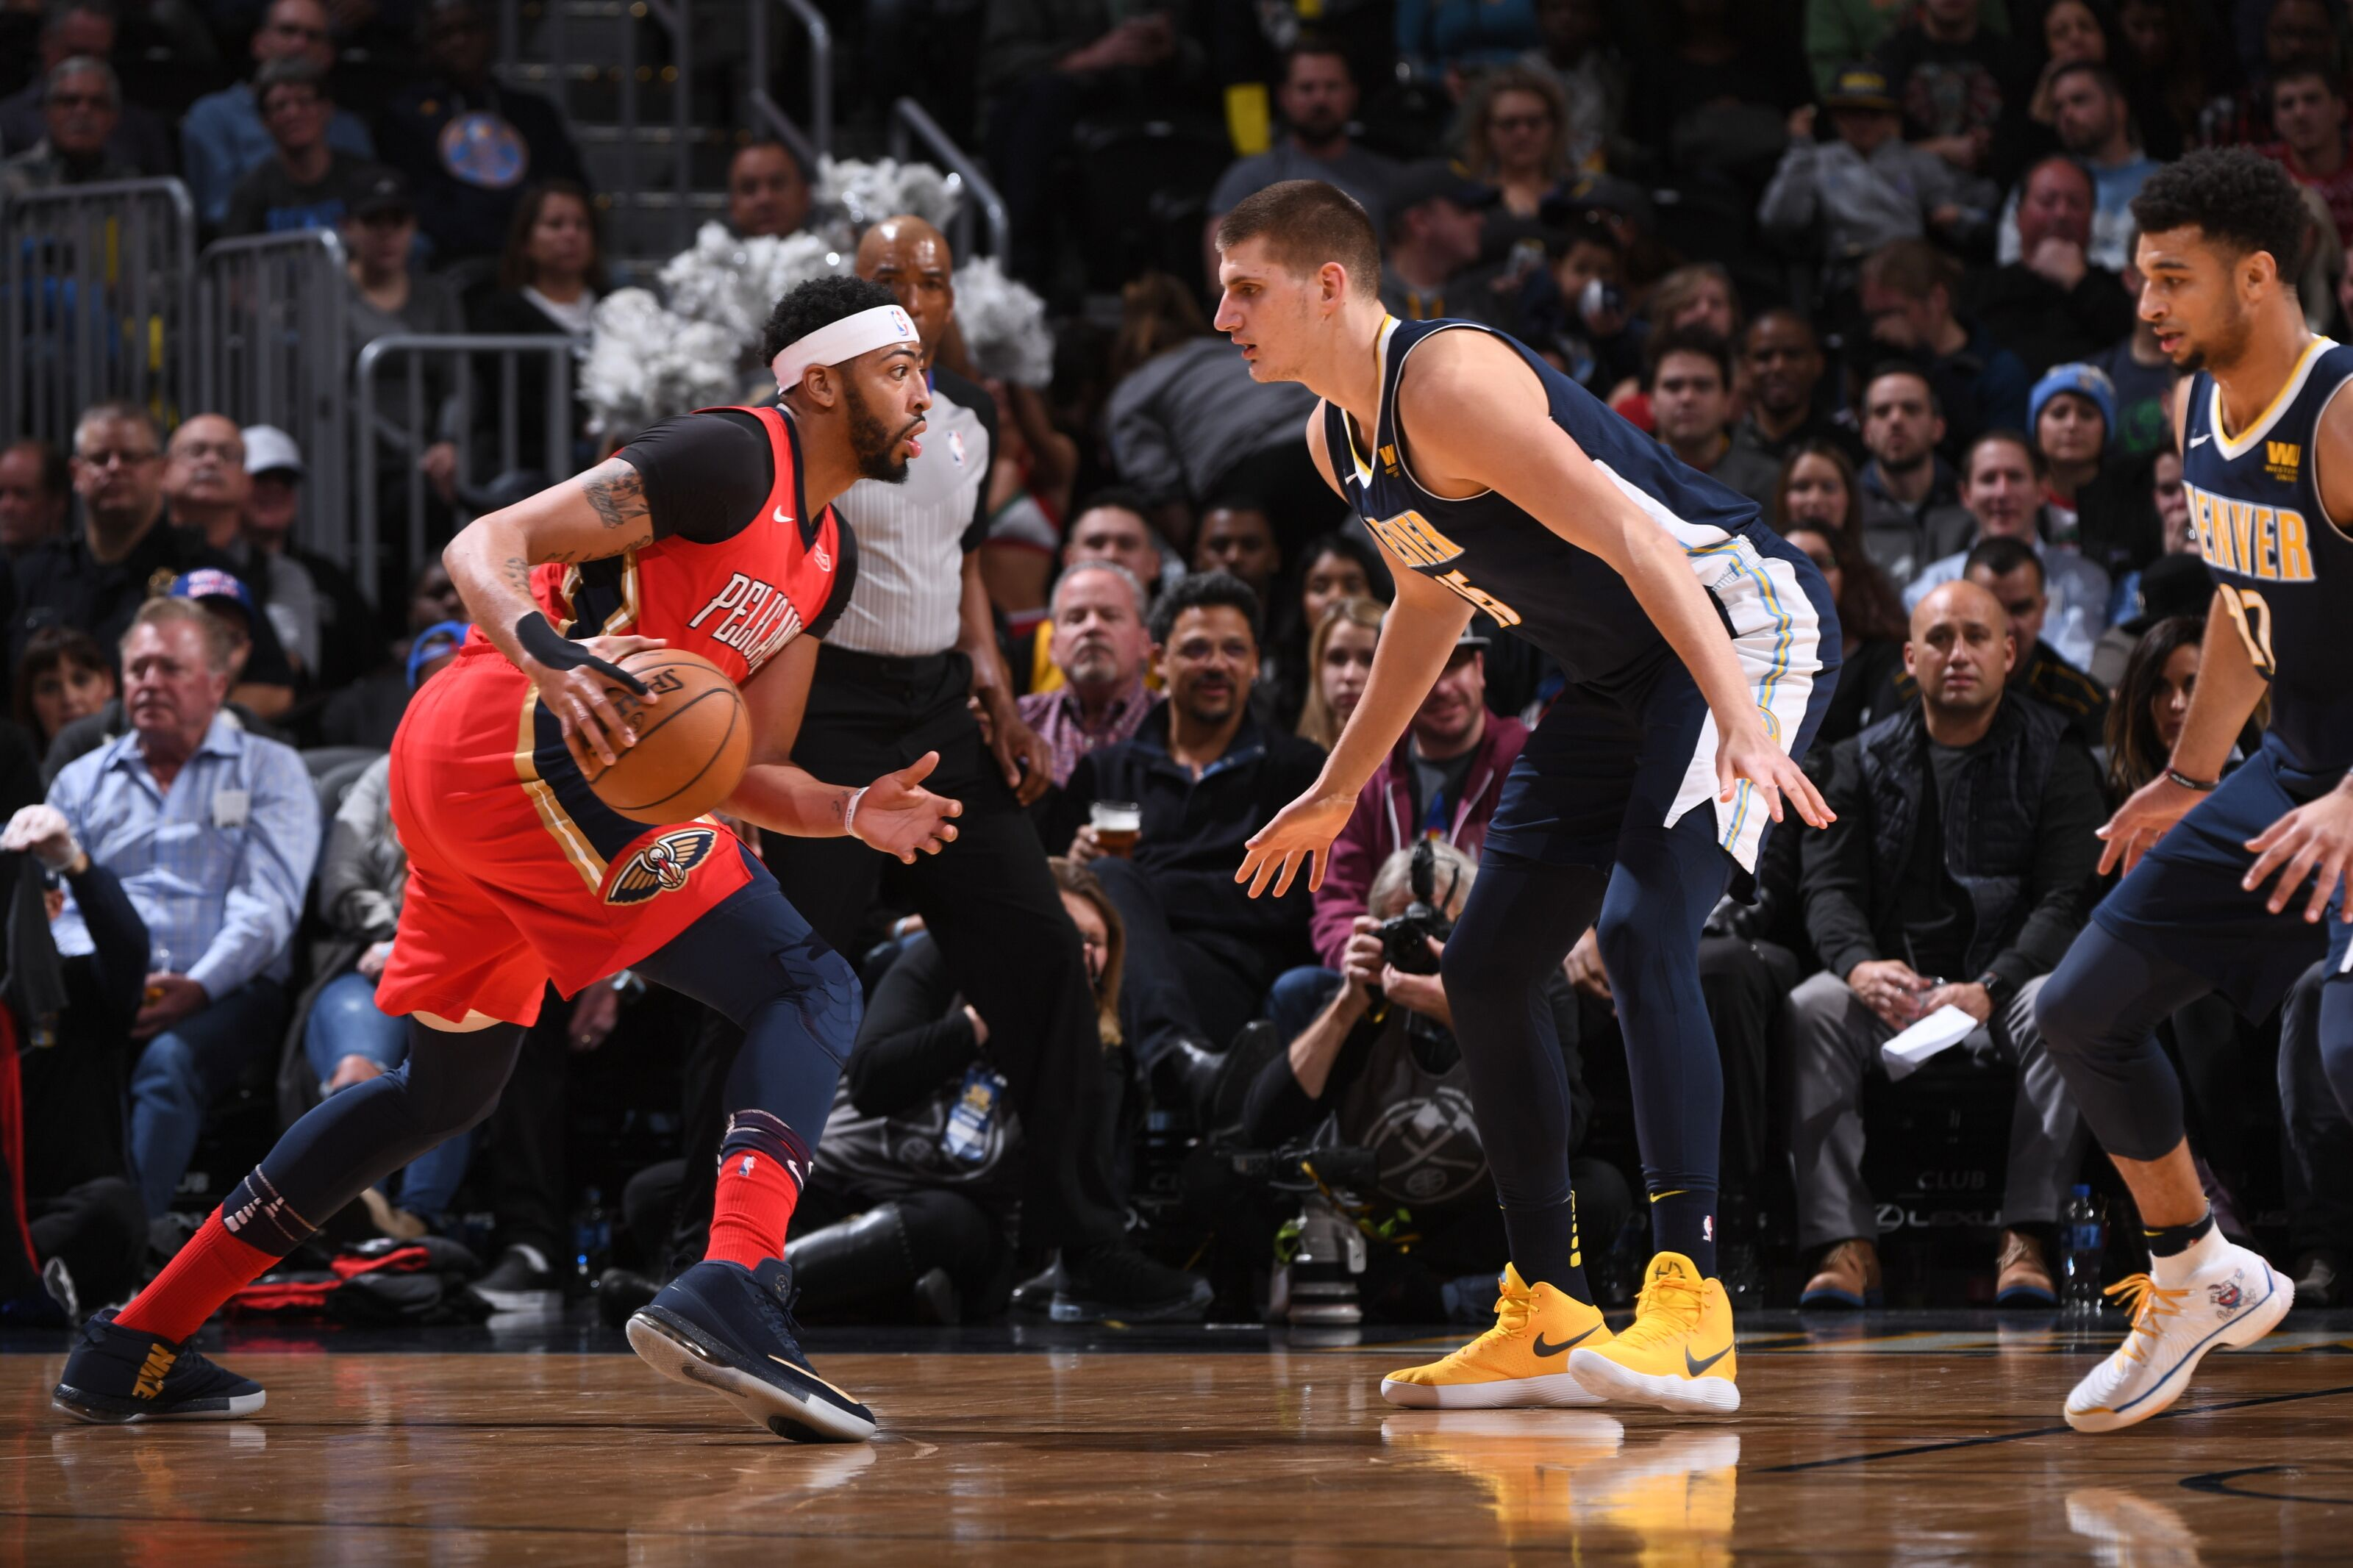 Denver Nuggets' trade potential in Pelicans' Anthony Davis tango